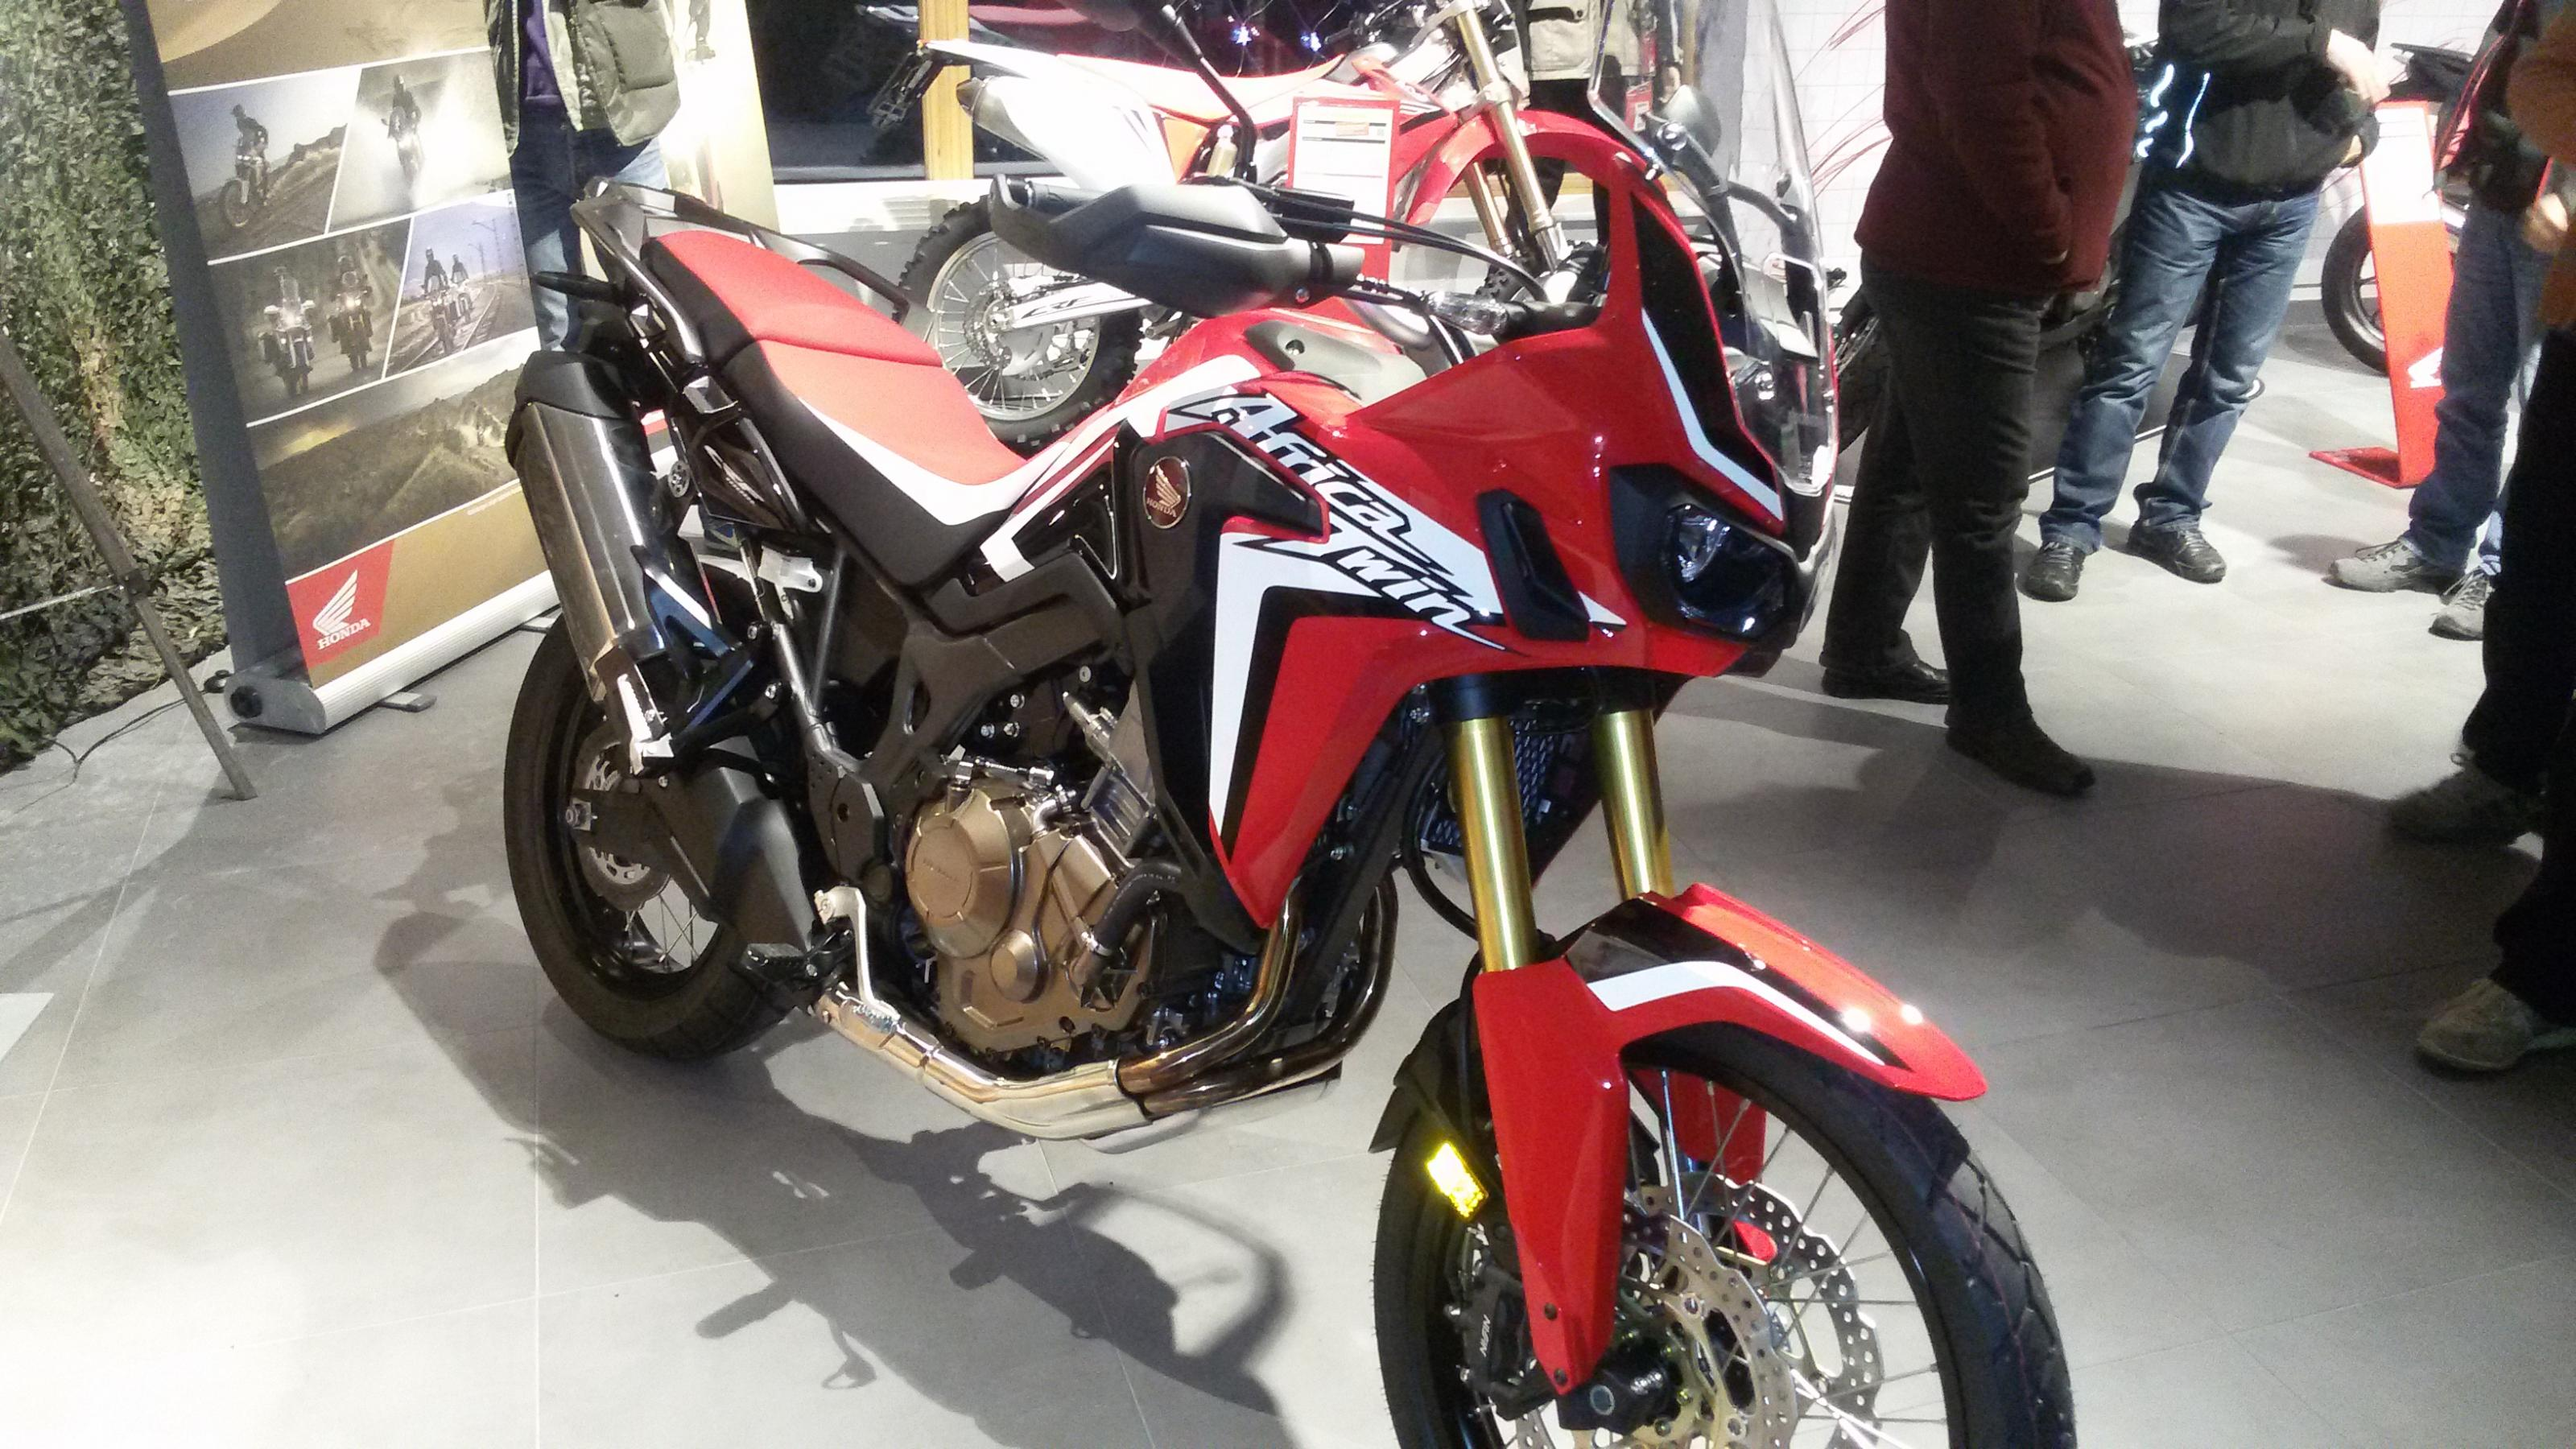 africa twin 2015 crf1000l seite 342. Black Bedroom Furniture Sets. Home Design Ideas